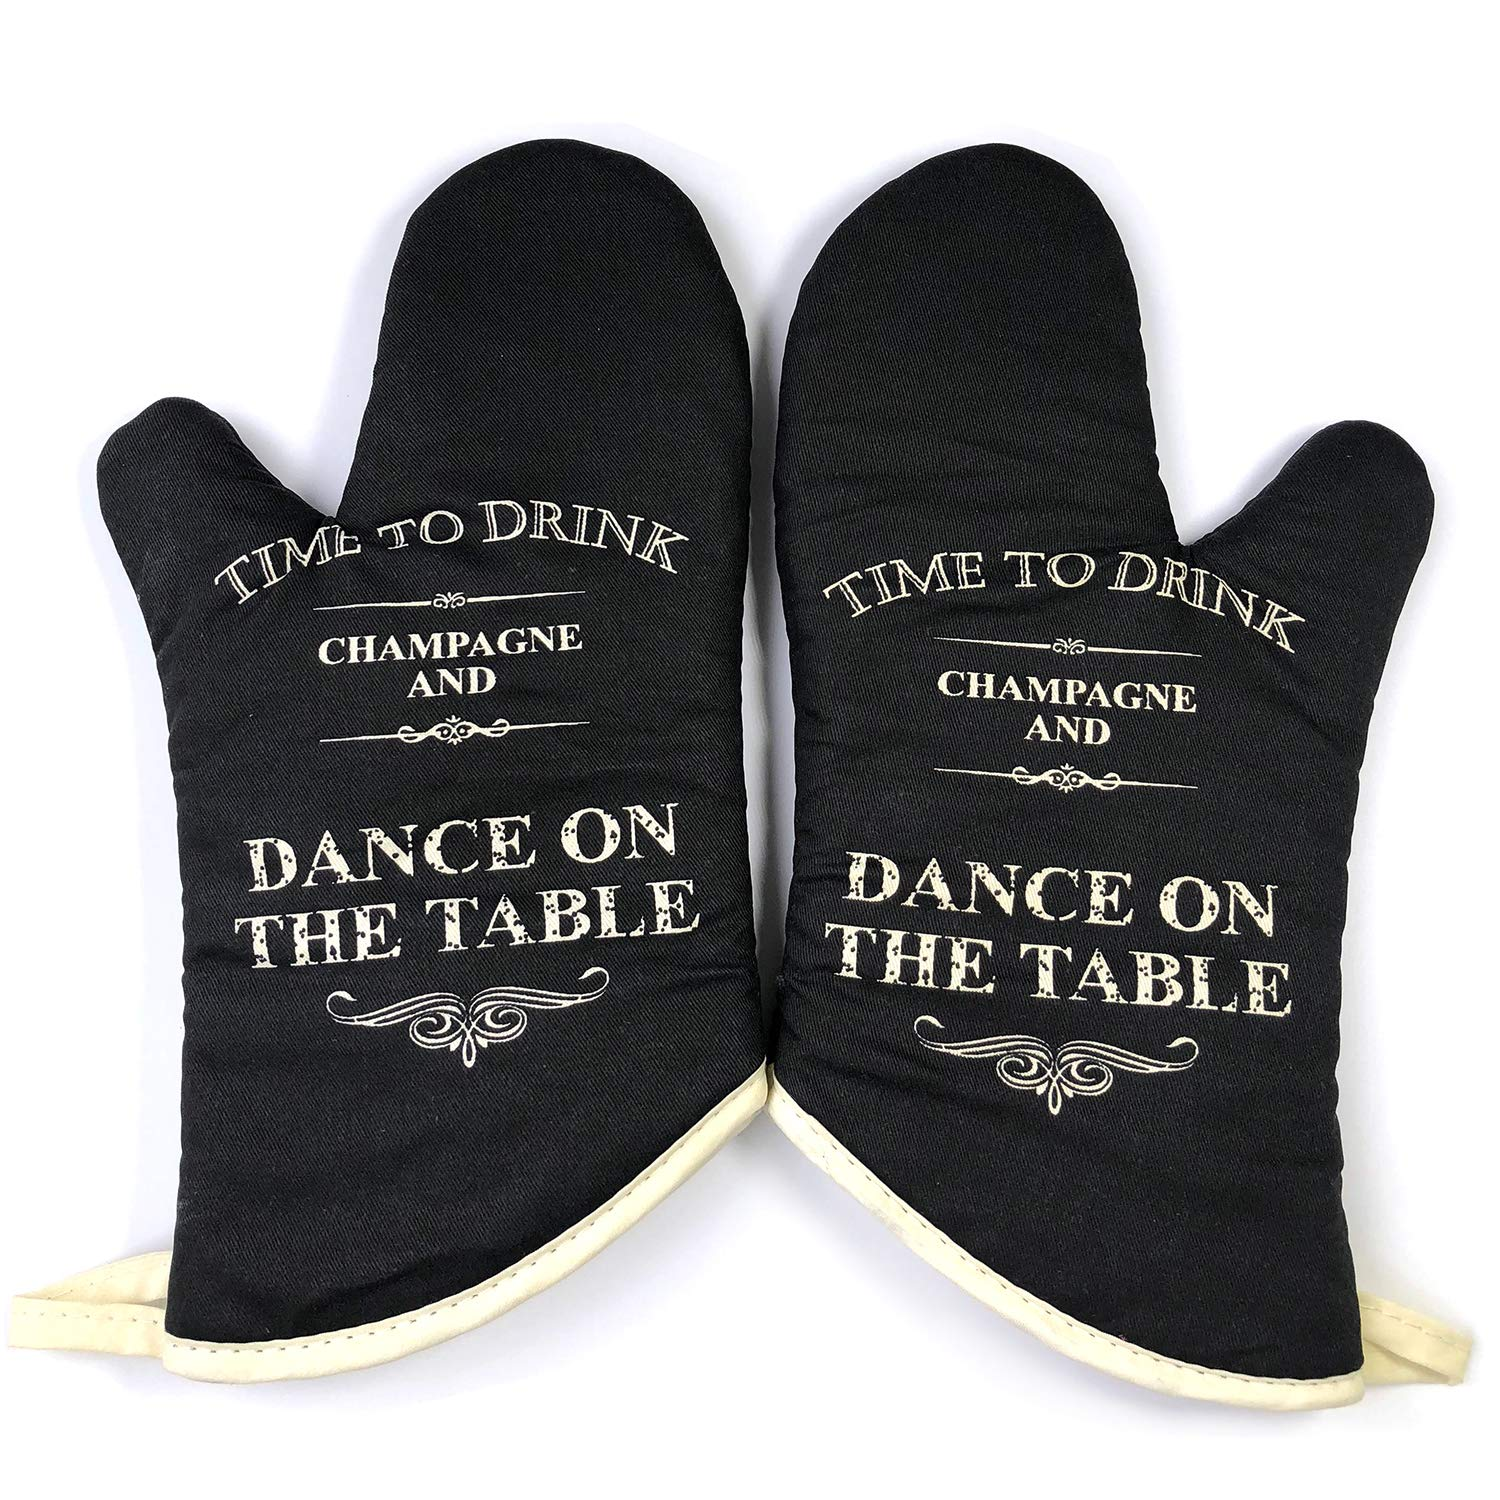 GREVY Vintage Oven Mitts with a Greeting Card (Drink-Dance)